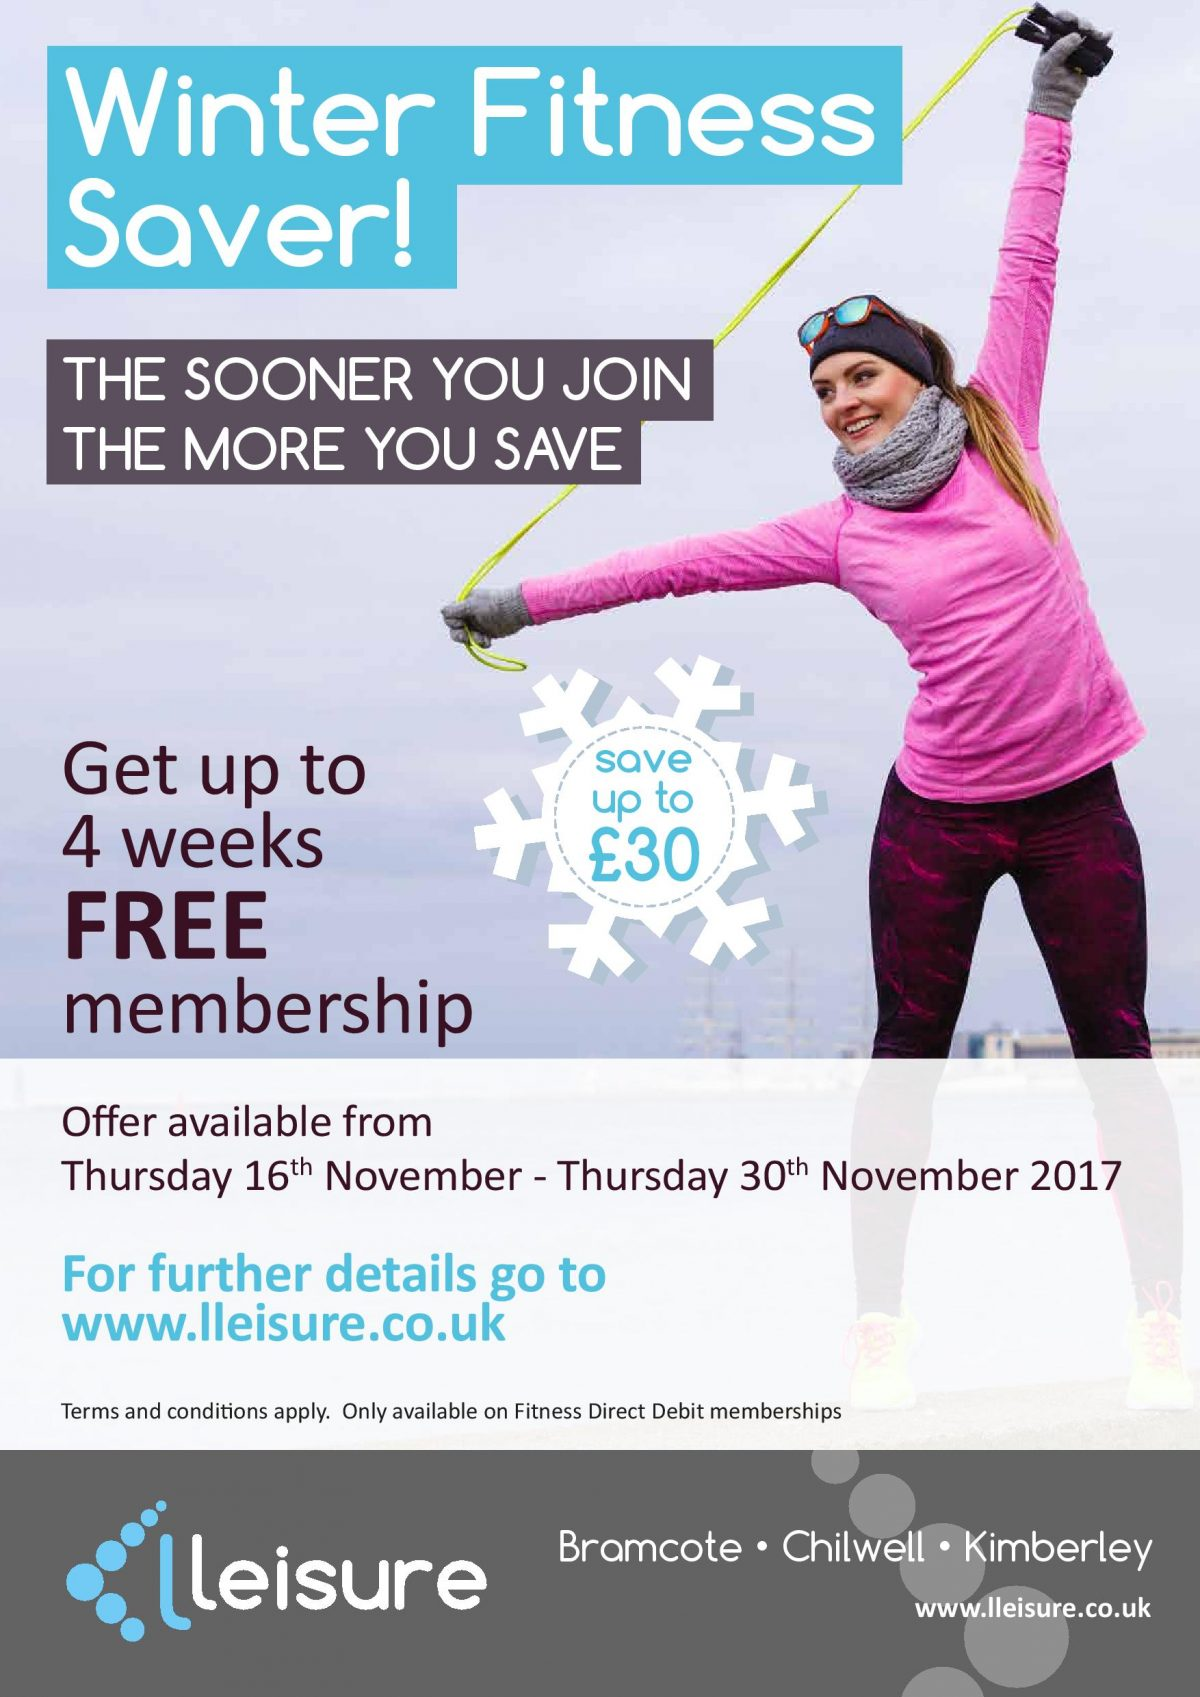 Winter Fitness Saver: The Sooner You Join the More You Save!